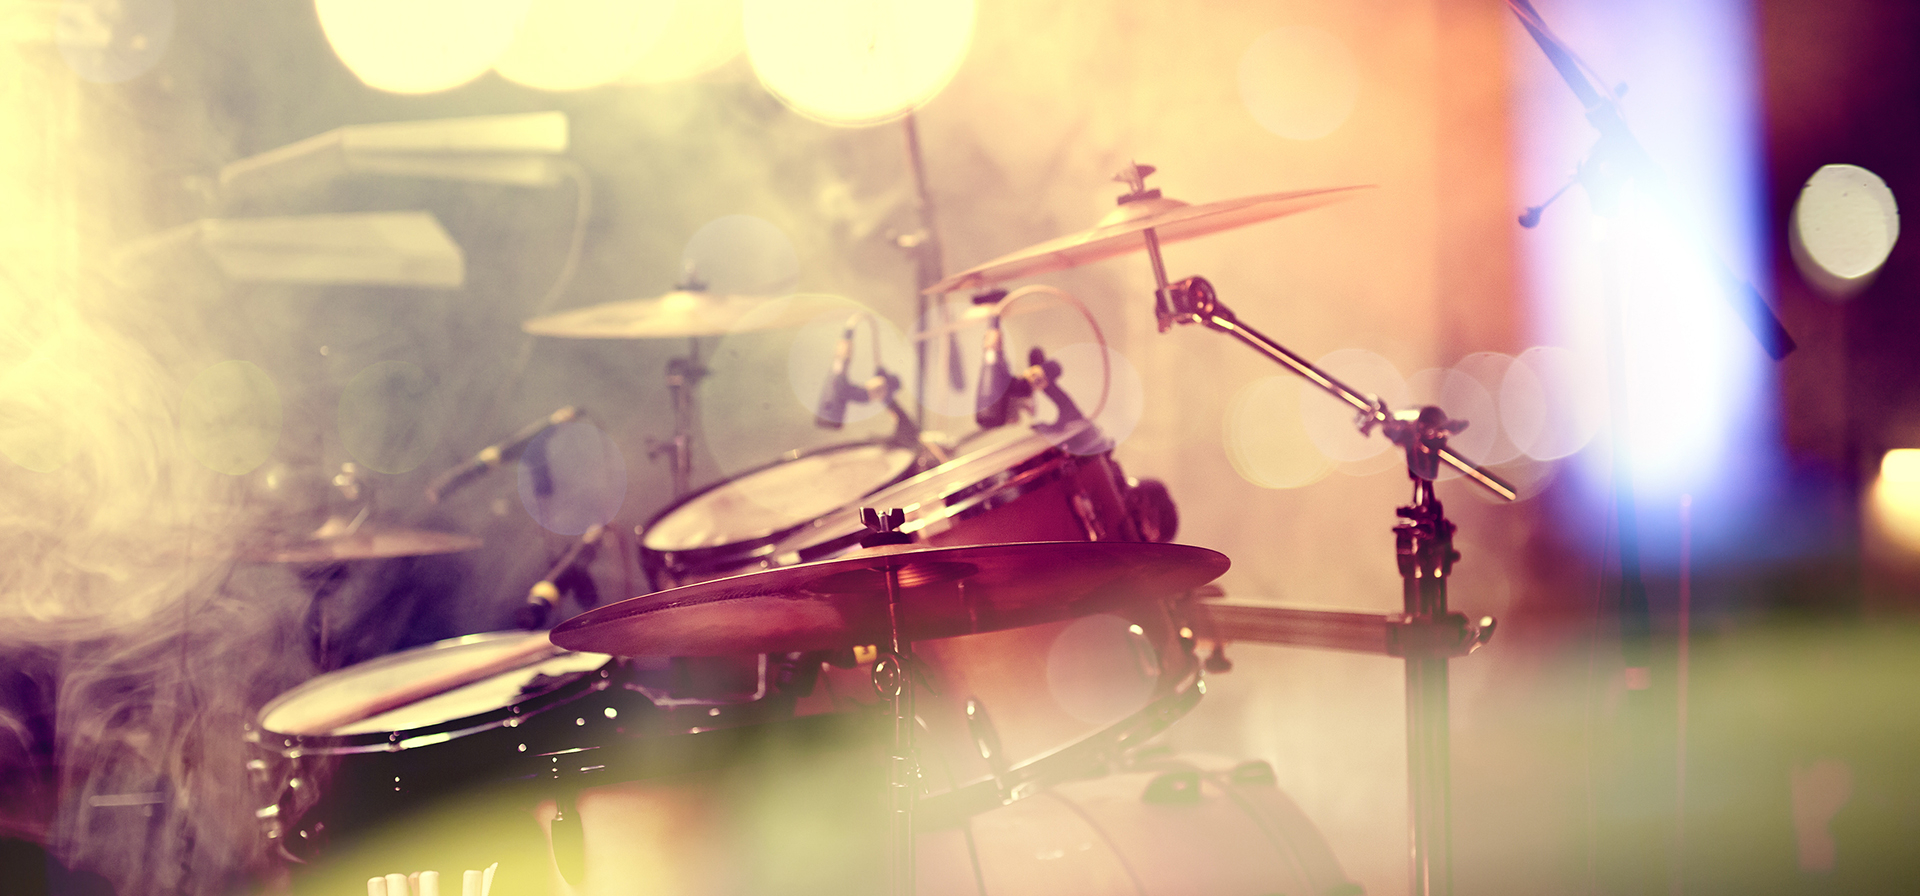 musical background  musical  instruments  music background